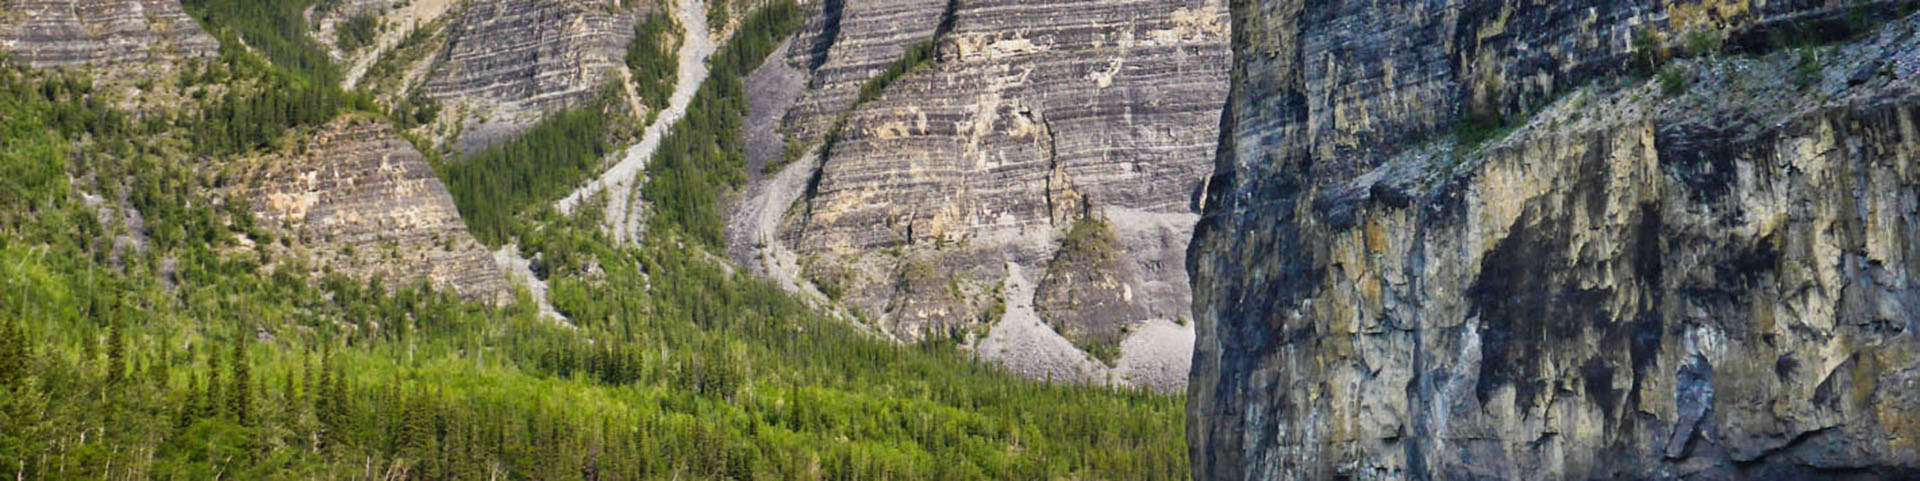 Nahanni River Getaway Canoe Trip by Black Feather - Image 270